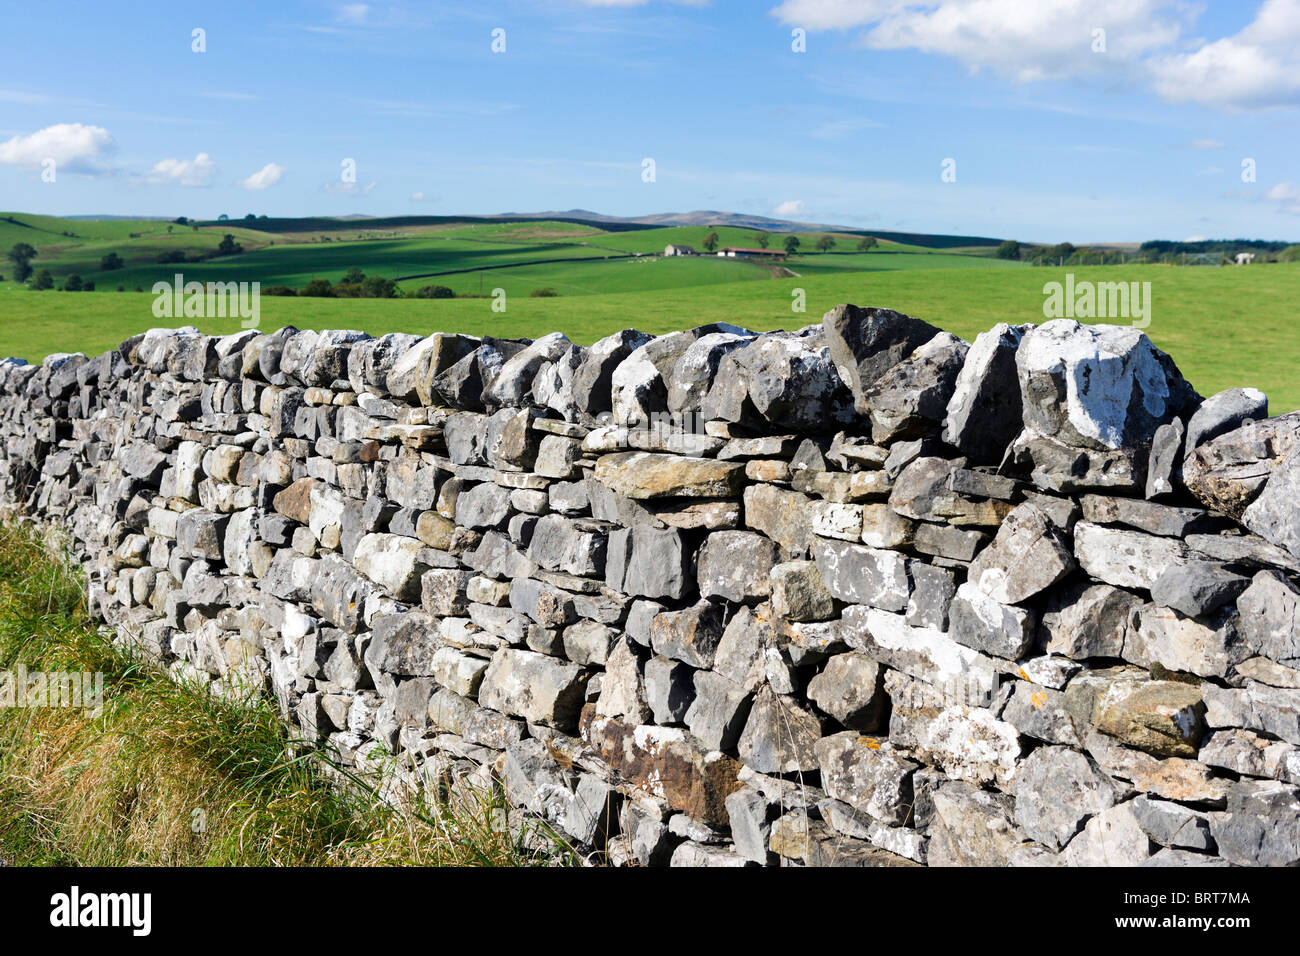 Dry stone wall in the countryside near Malham, Wharfedale, Yorkshire Dales National Park, England, UK - Stock Image